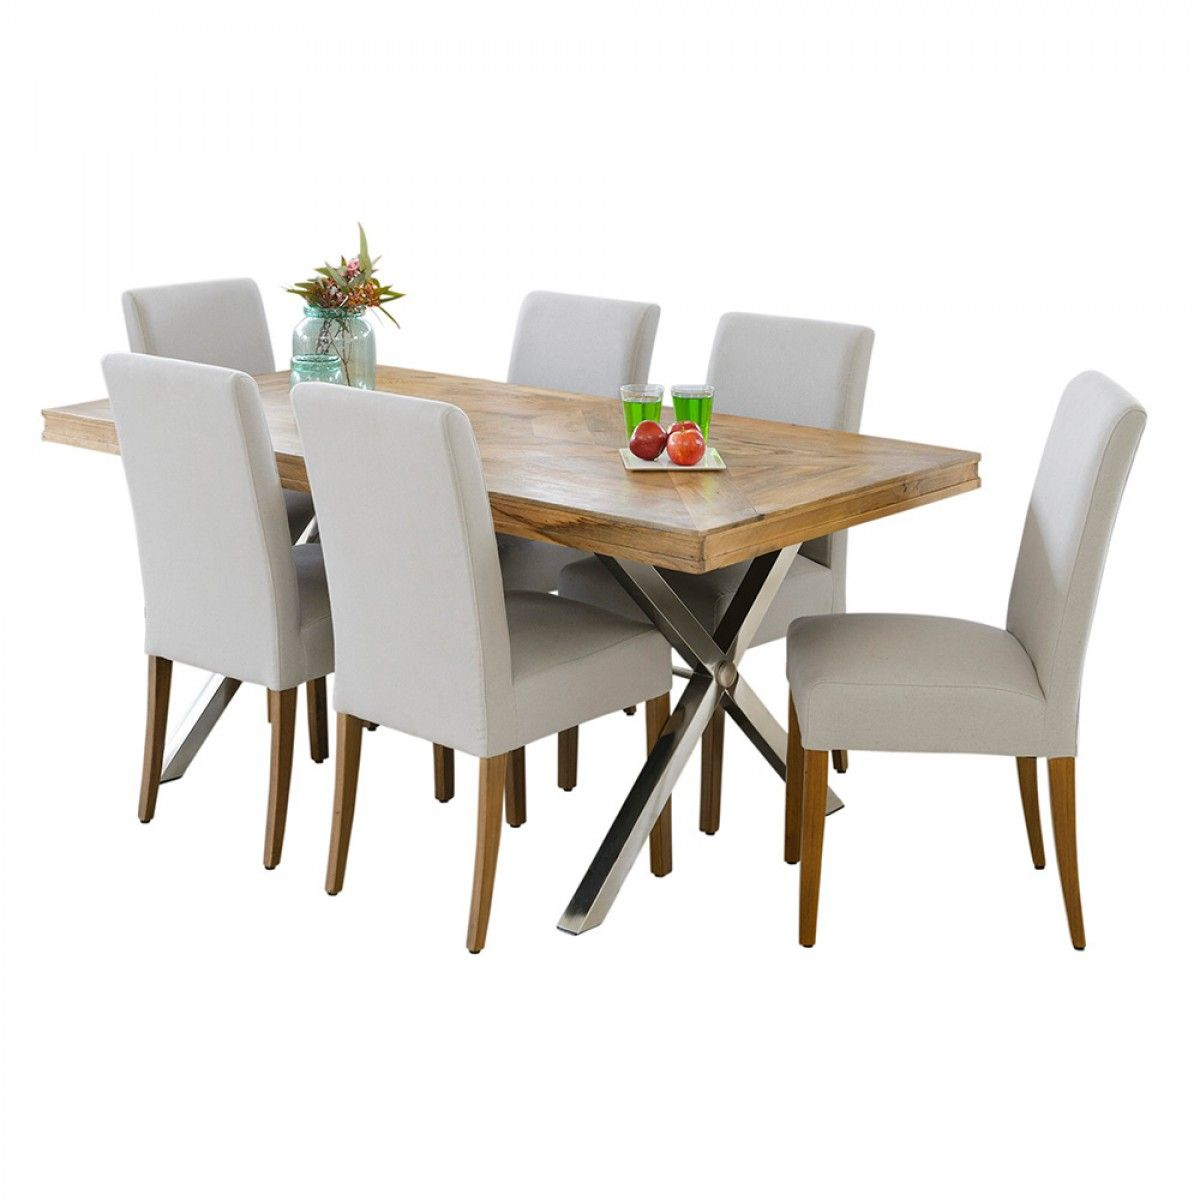 Groovy Croxley 1820 Table With 6 Cole Chairs Package Packages Gamerscity Chair Design For Home Gamerscityorg